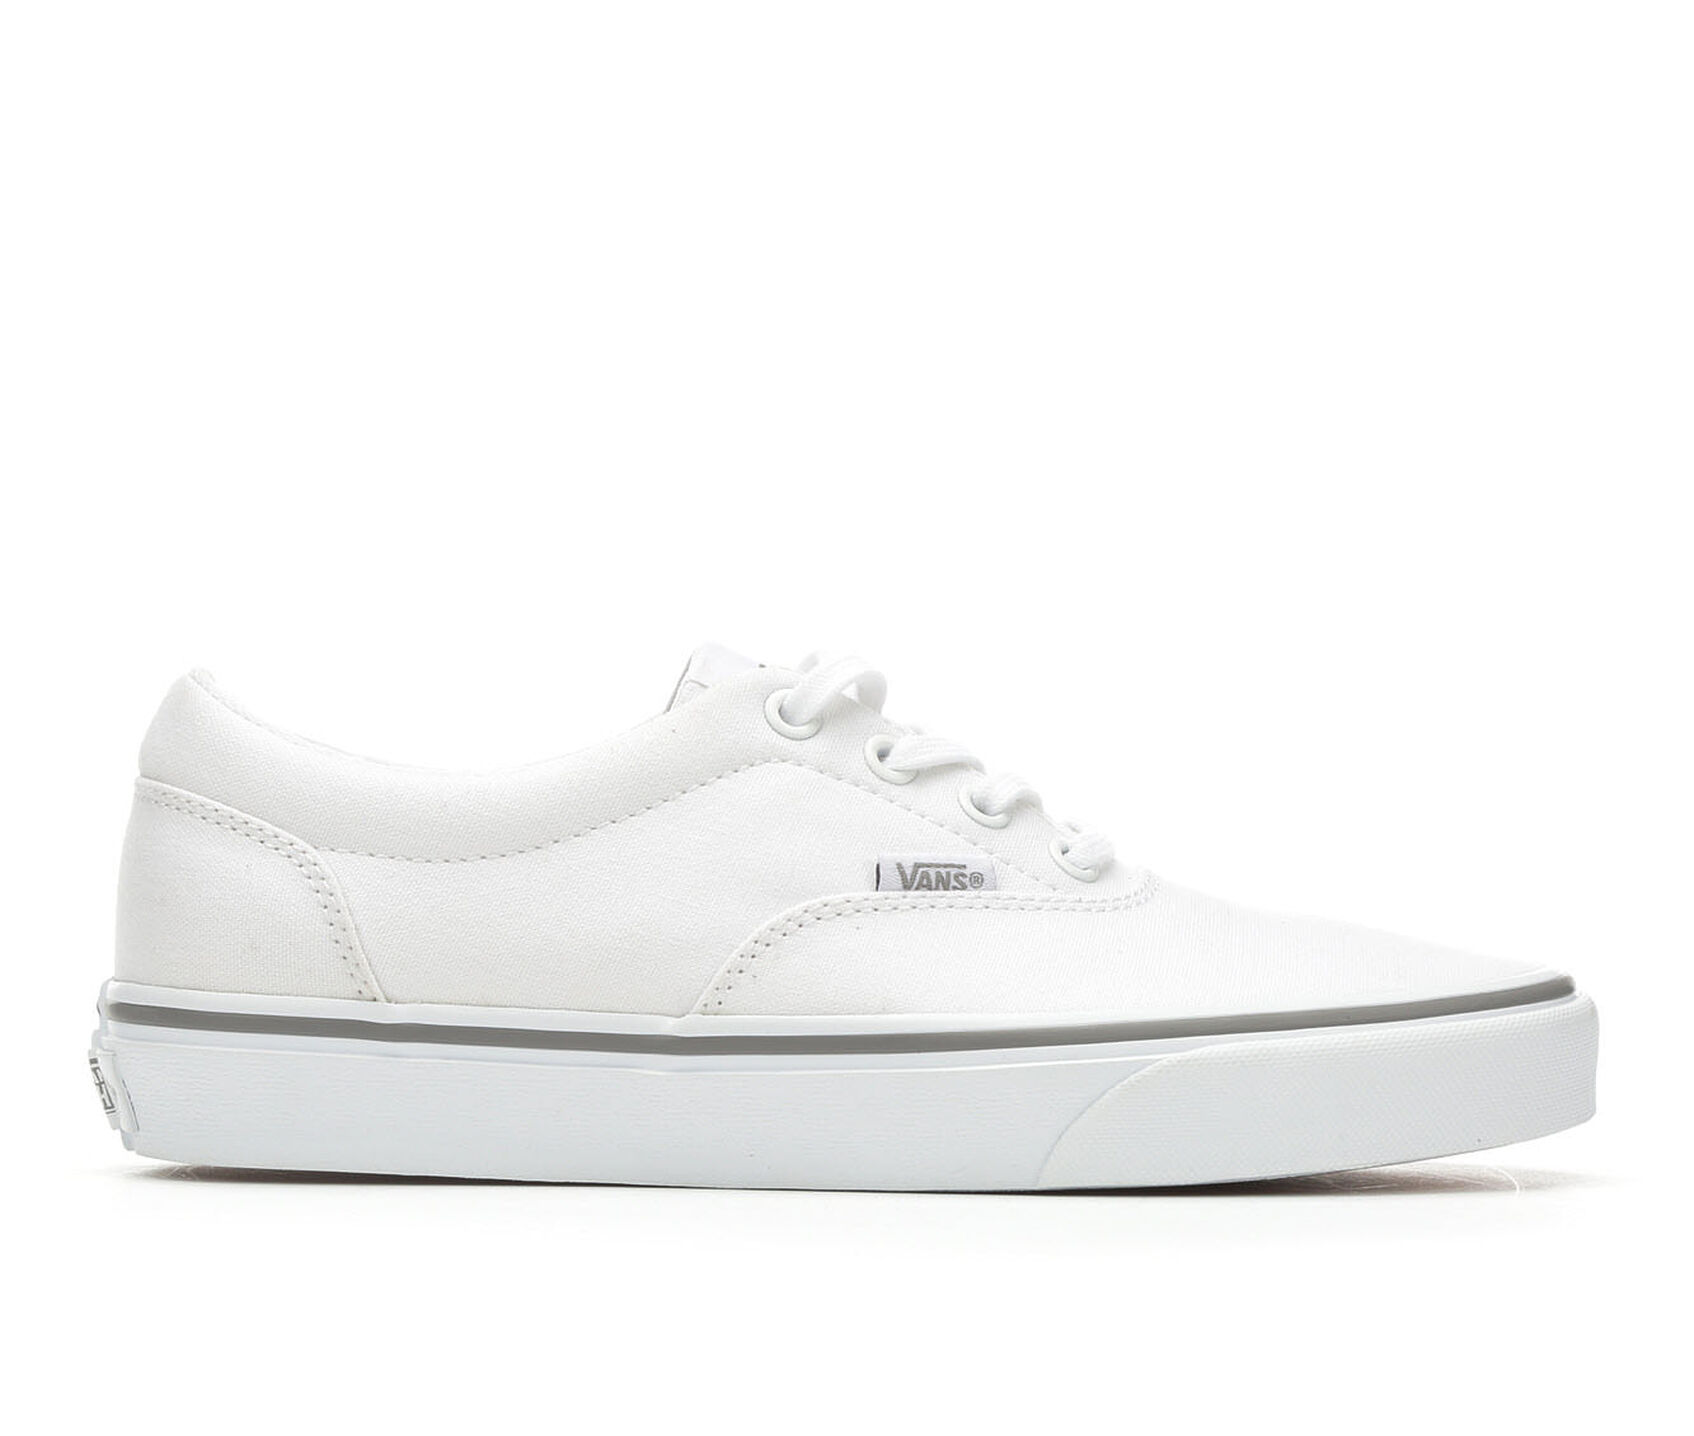 0b407b096c4a31 Women  39 s Vans Doheny Skate Shoes. Previous